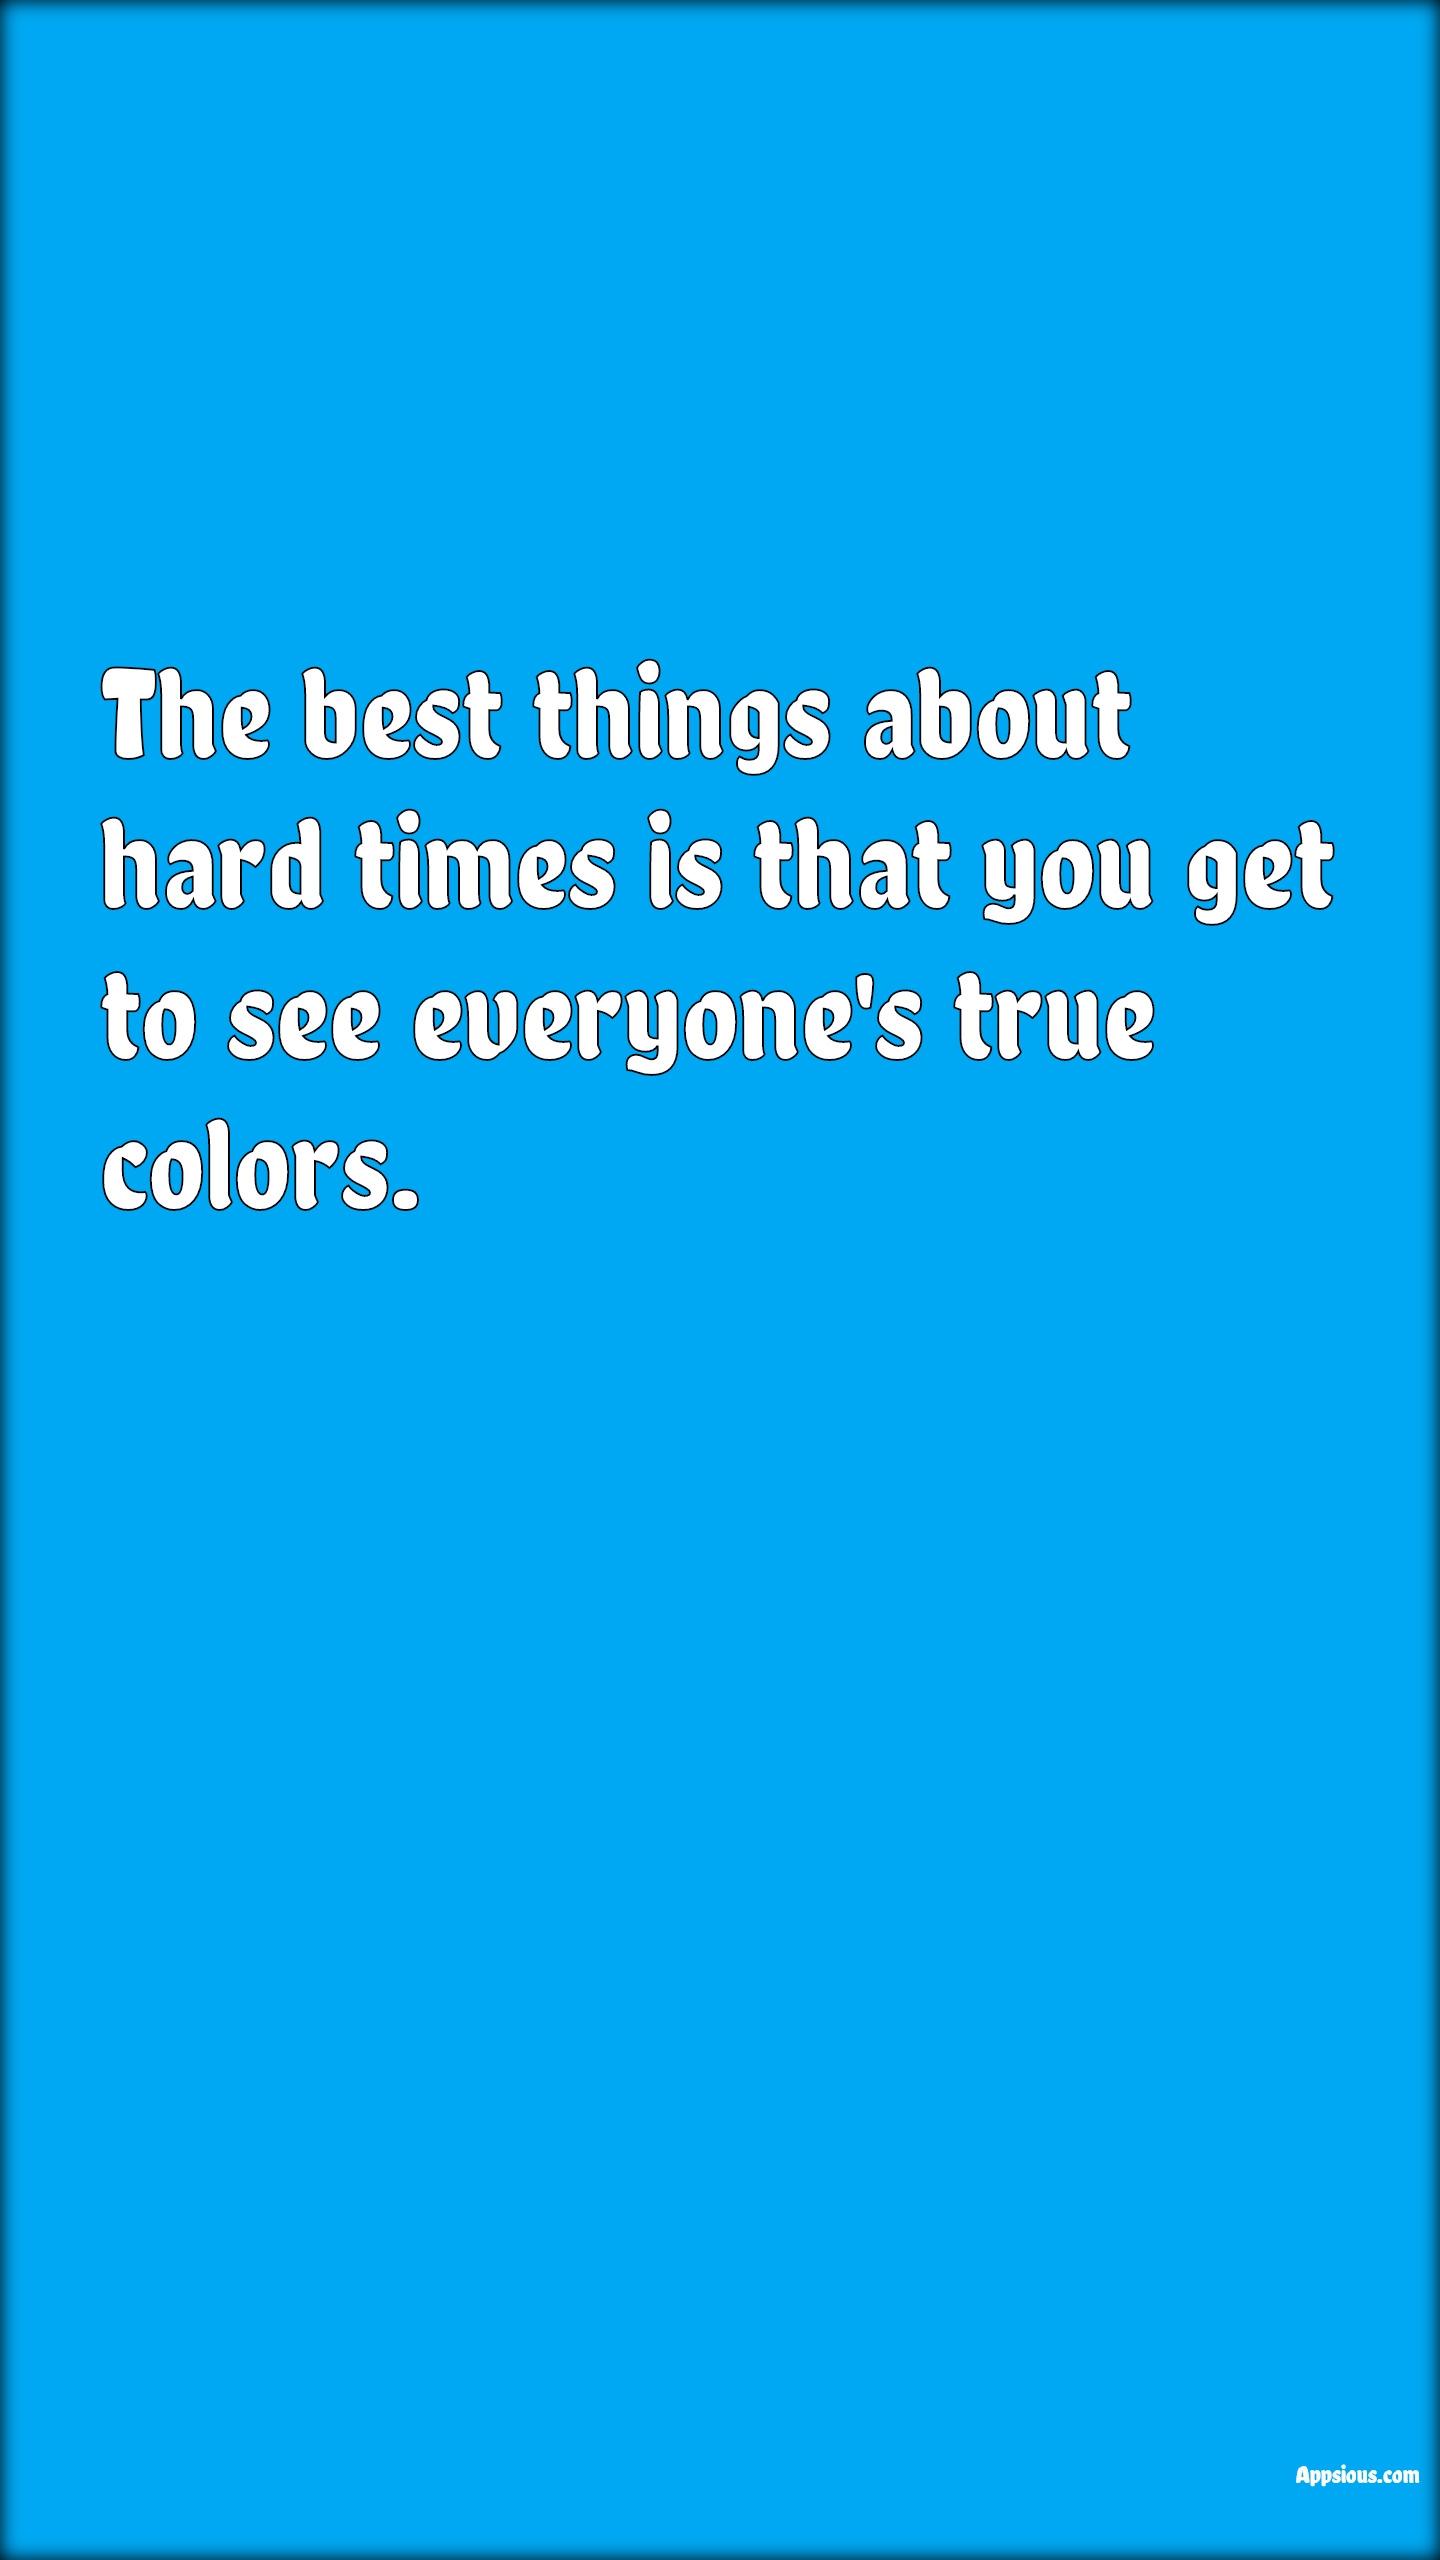 The best things about hard times is that you get to see everyone's true colors.